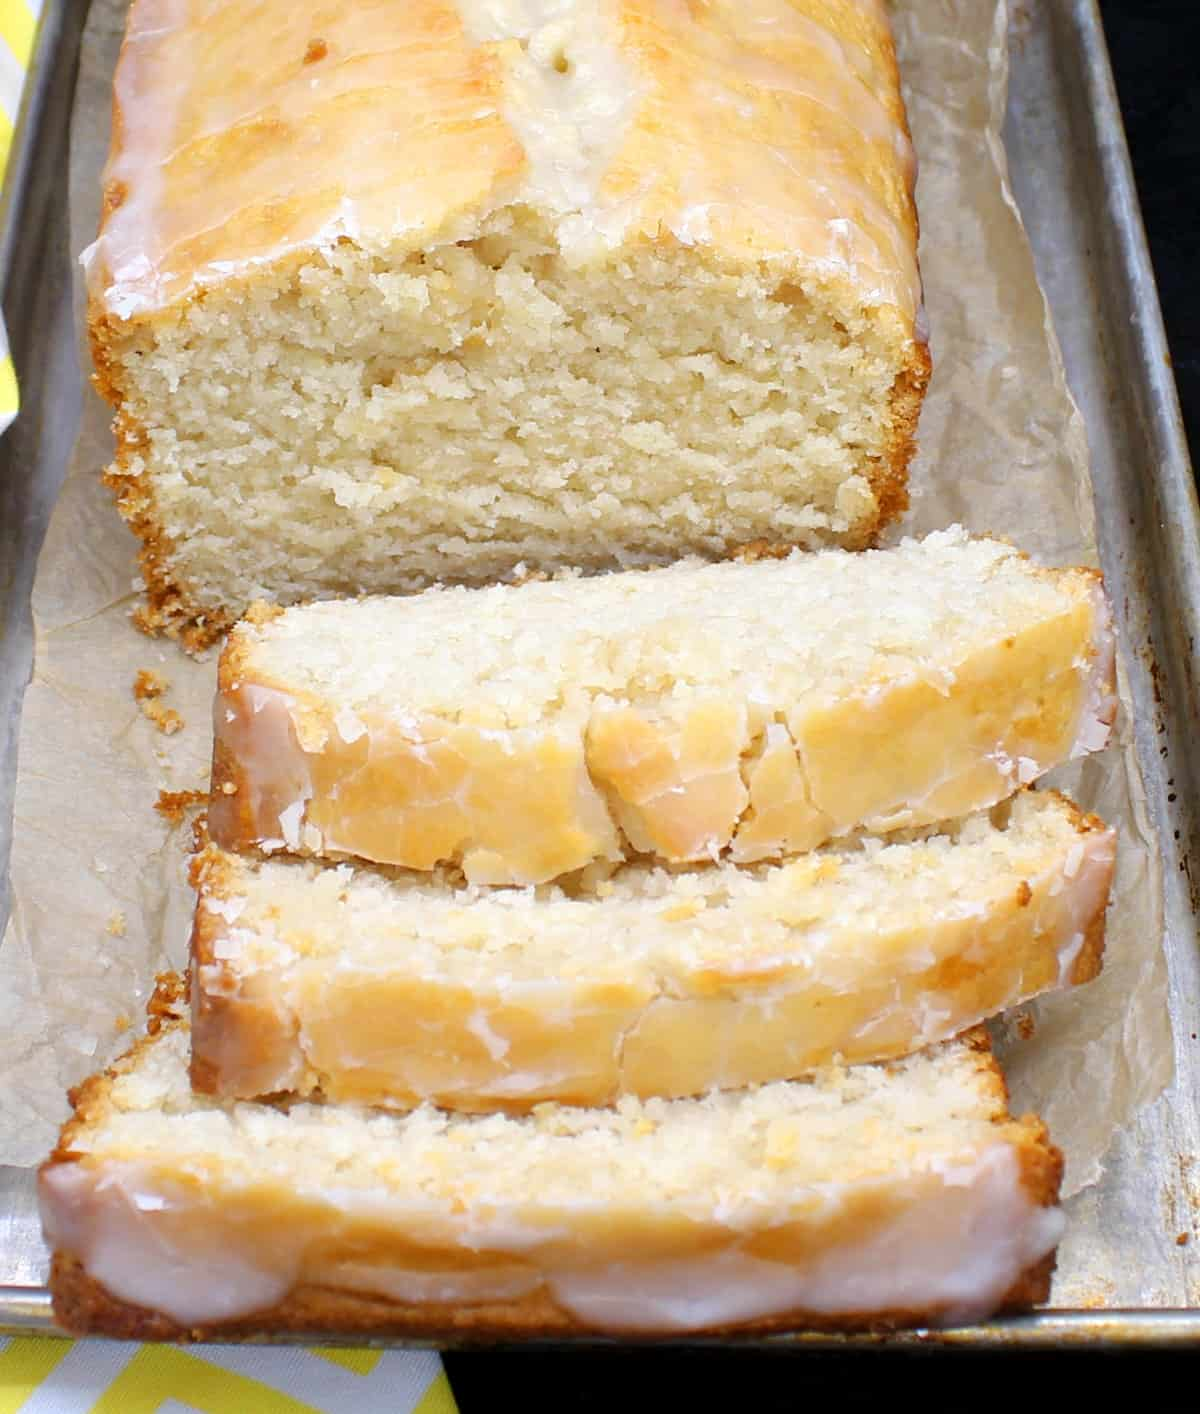 A loaf of buttery vegan lemon pound cake on a metal baking tray with slices cut in front of it and showing the dense, soft crumb.